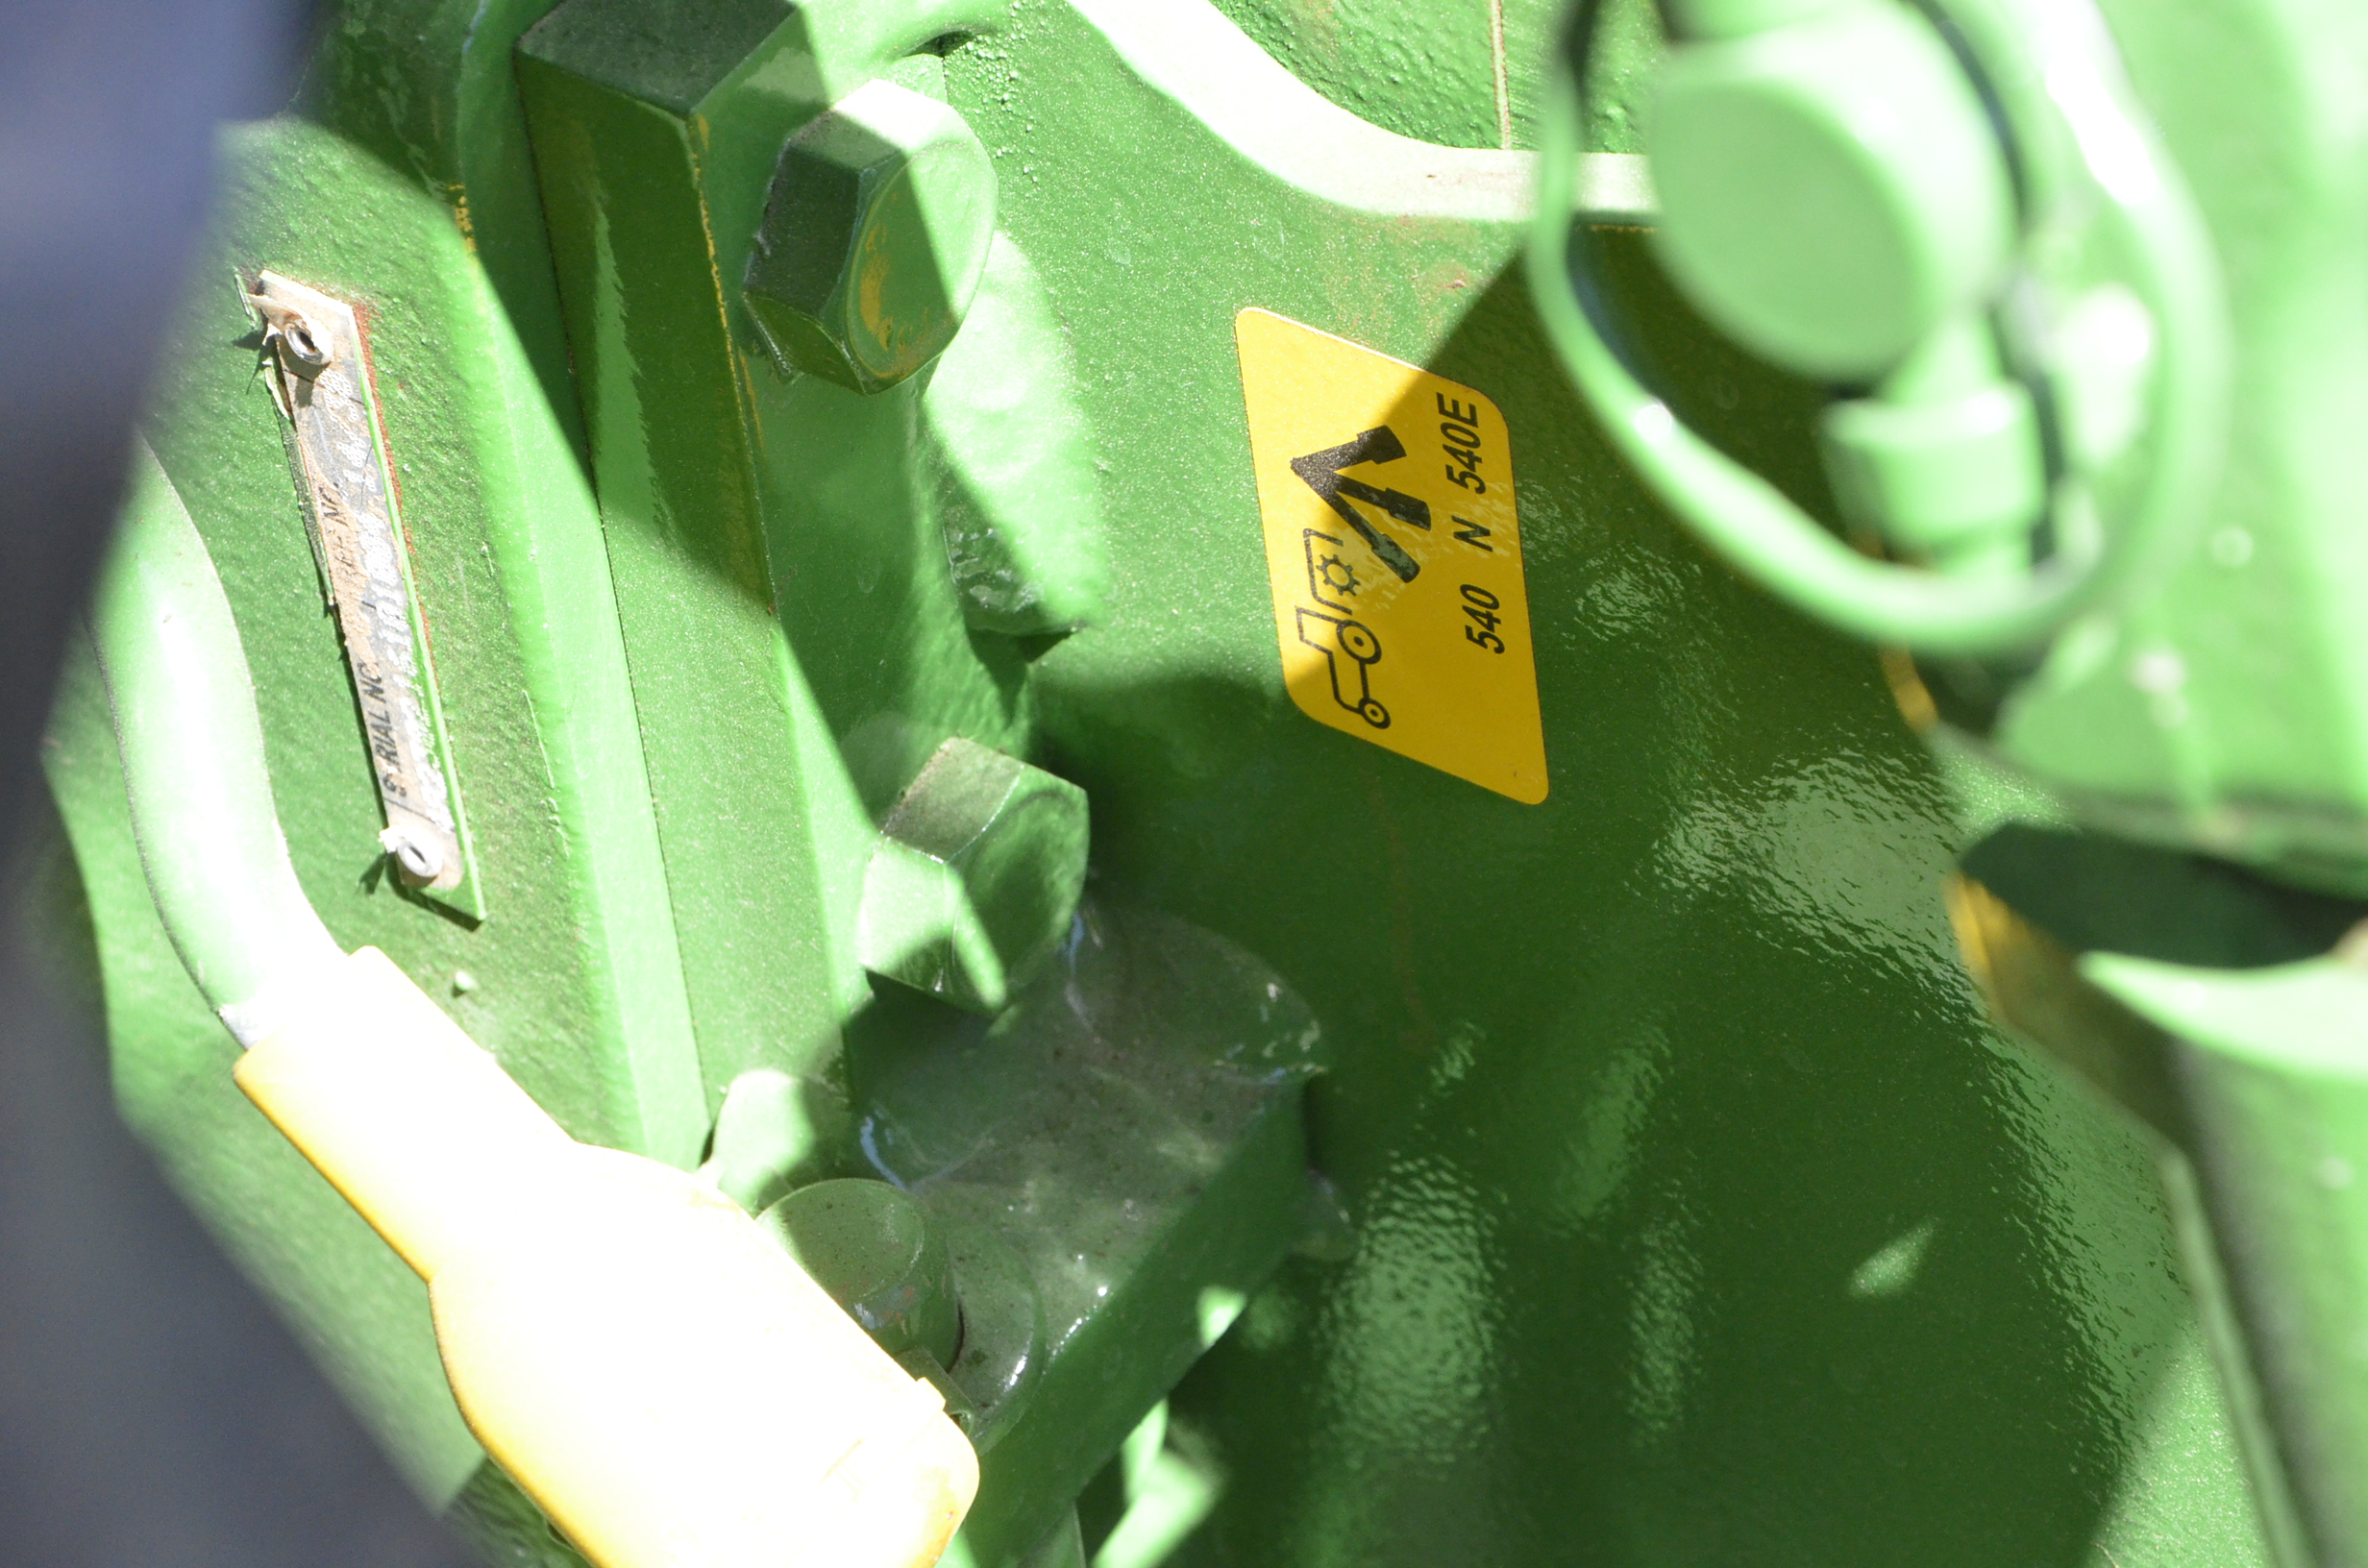 JohnDeere5090GF-27